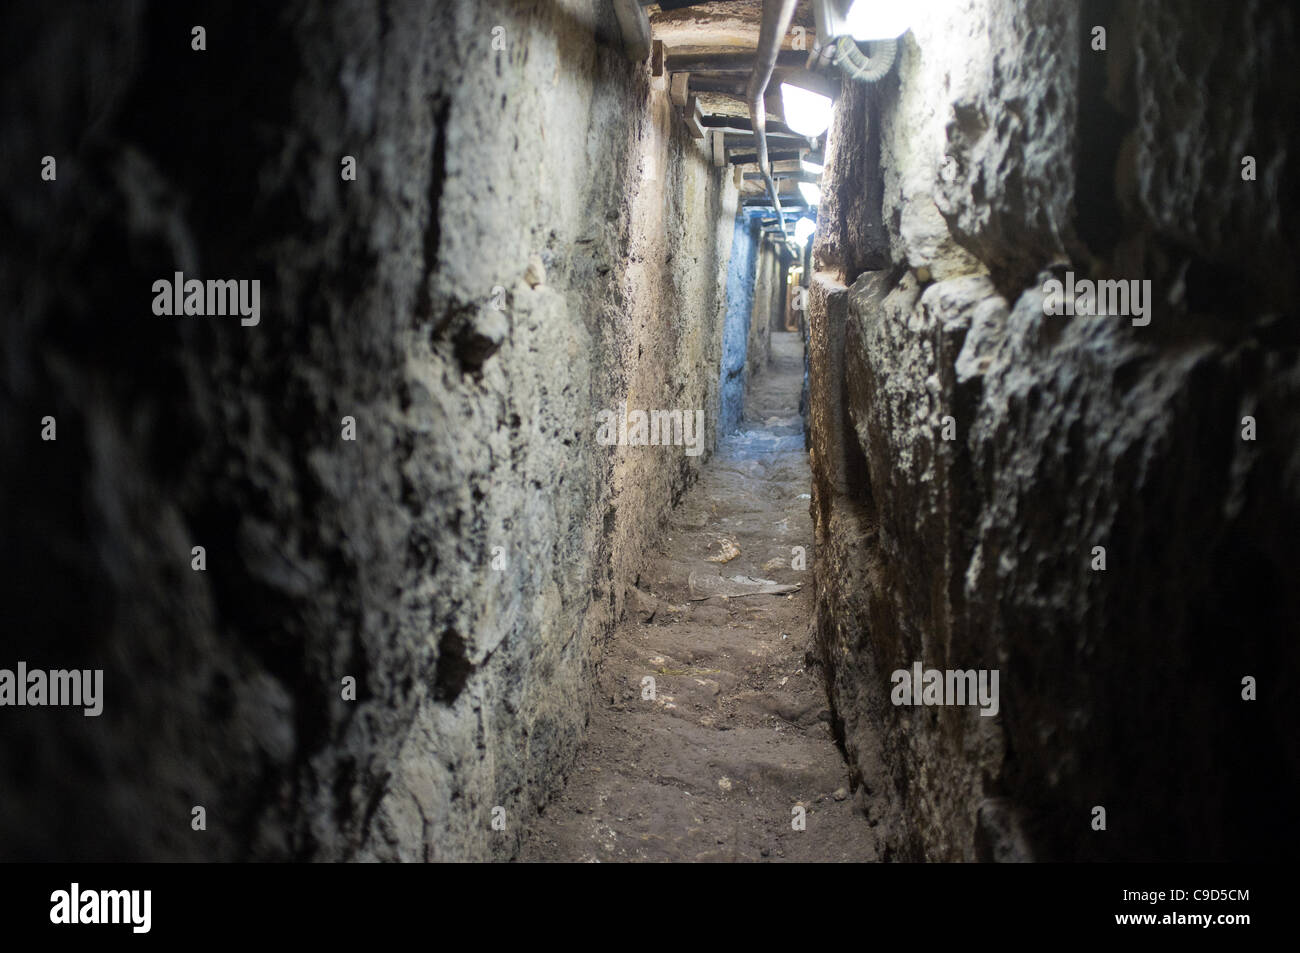 Jerusalem, Israel. 23rd November, 2011. Underground archaeological excavations continue along the 600 metre long Stock Photo